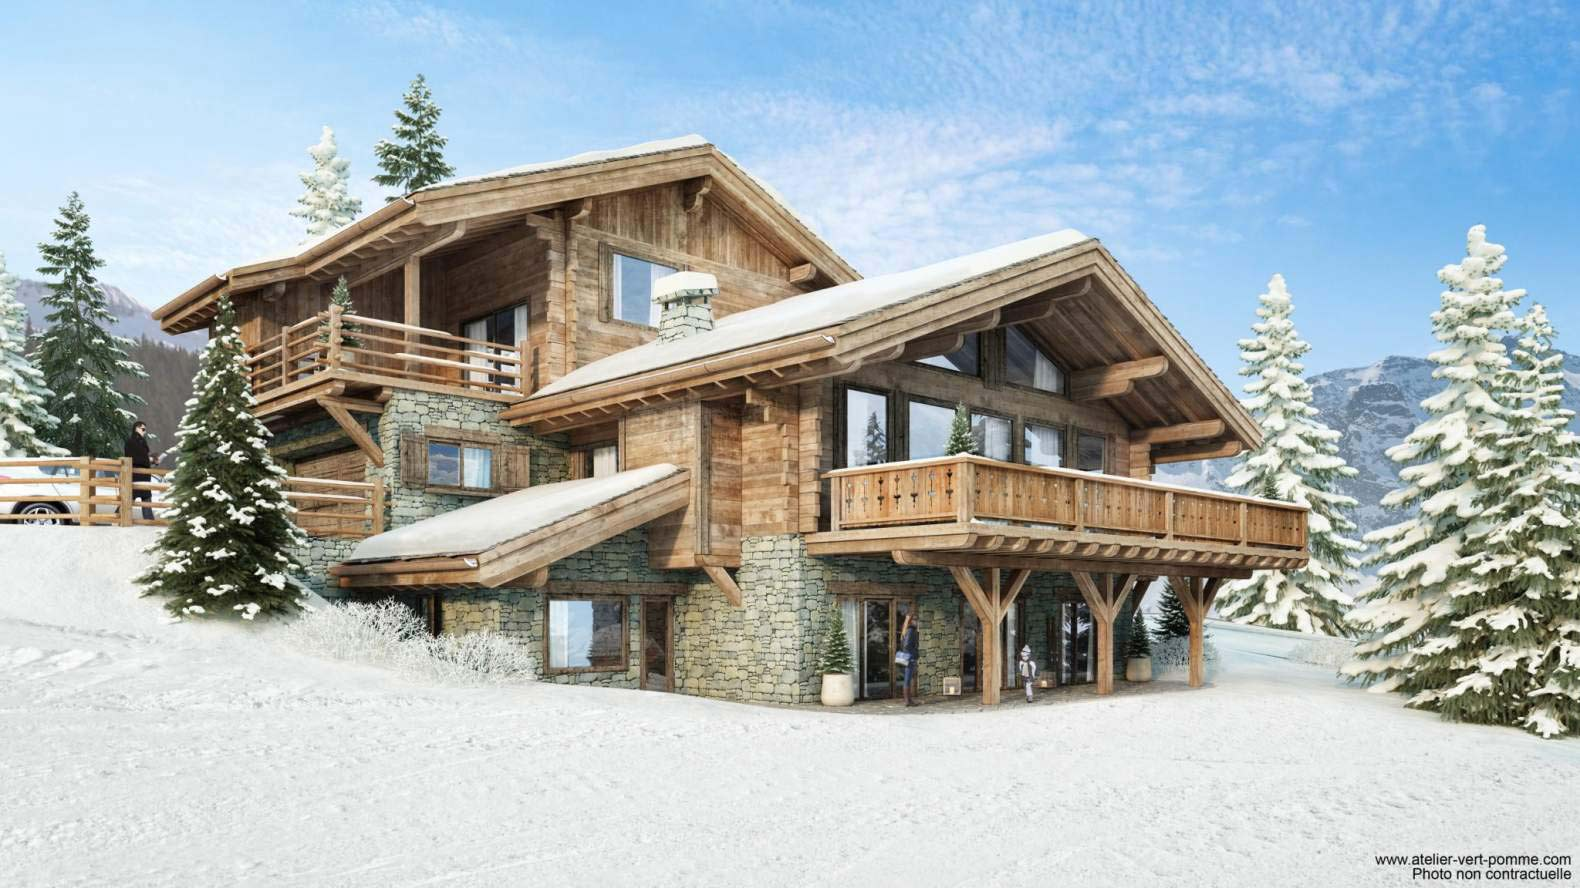 Le Refuge Megeve Architecte conference: investing in the mountains: the swiss and french